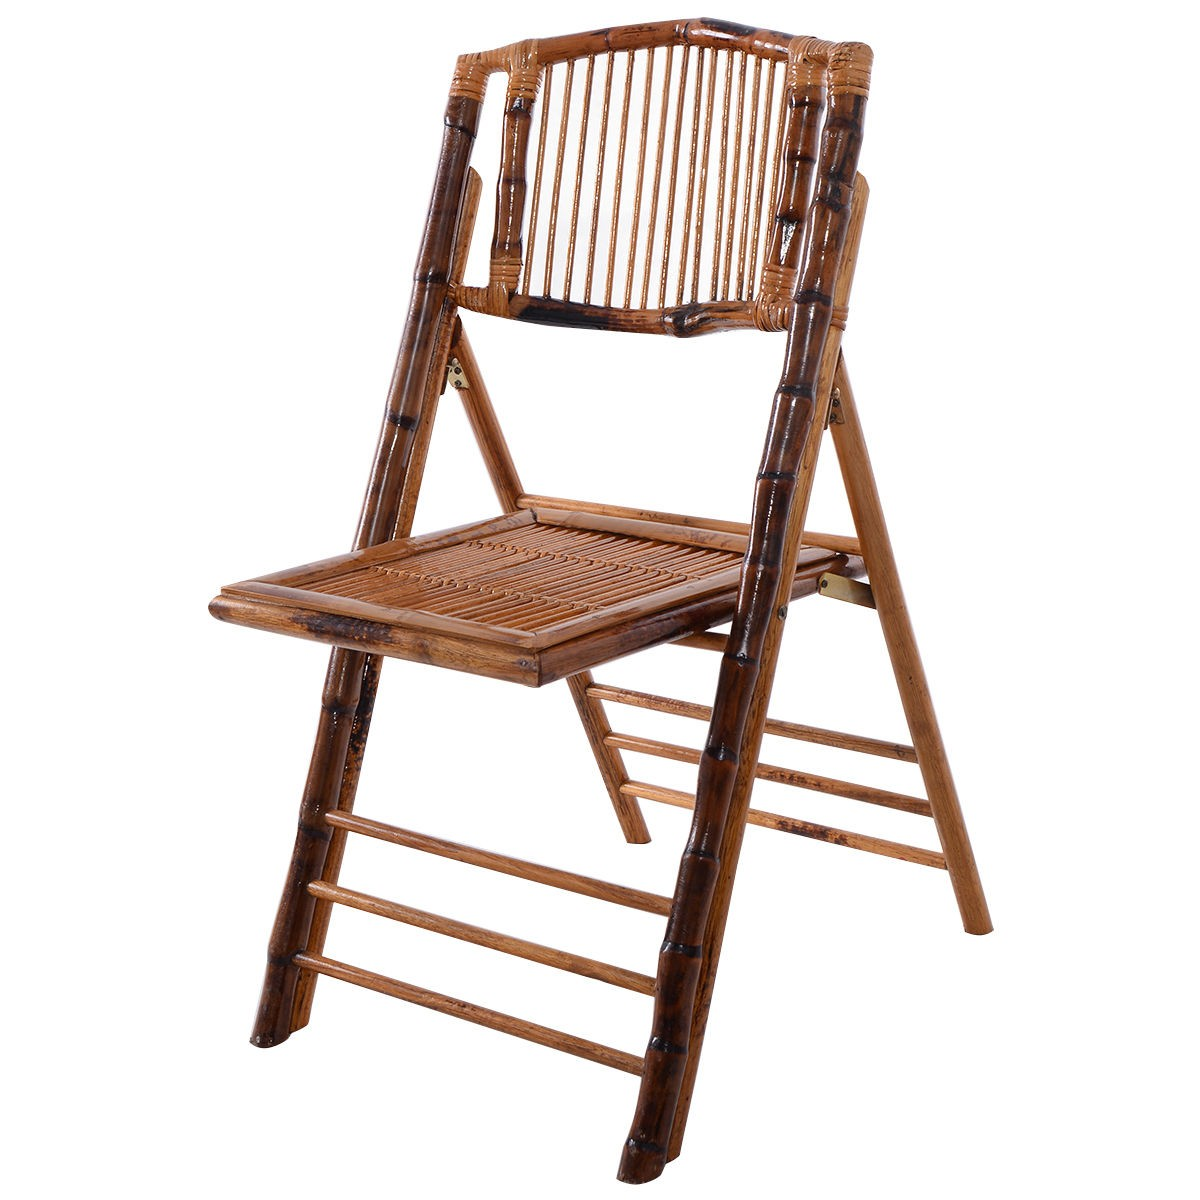 Set of 2 Bamboo Folding Chairs Patio Garden Wedding Party Outdoor Furniture